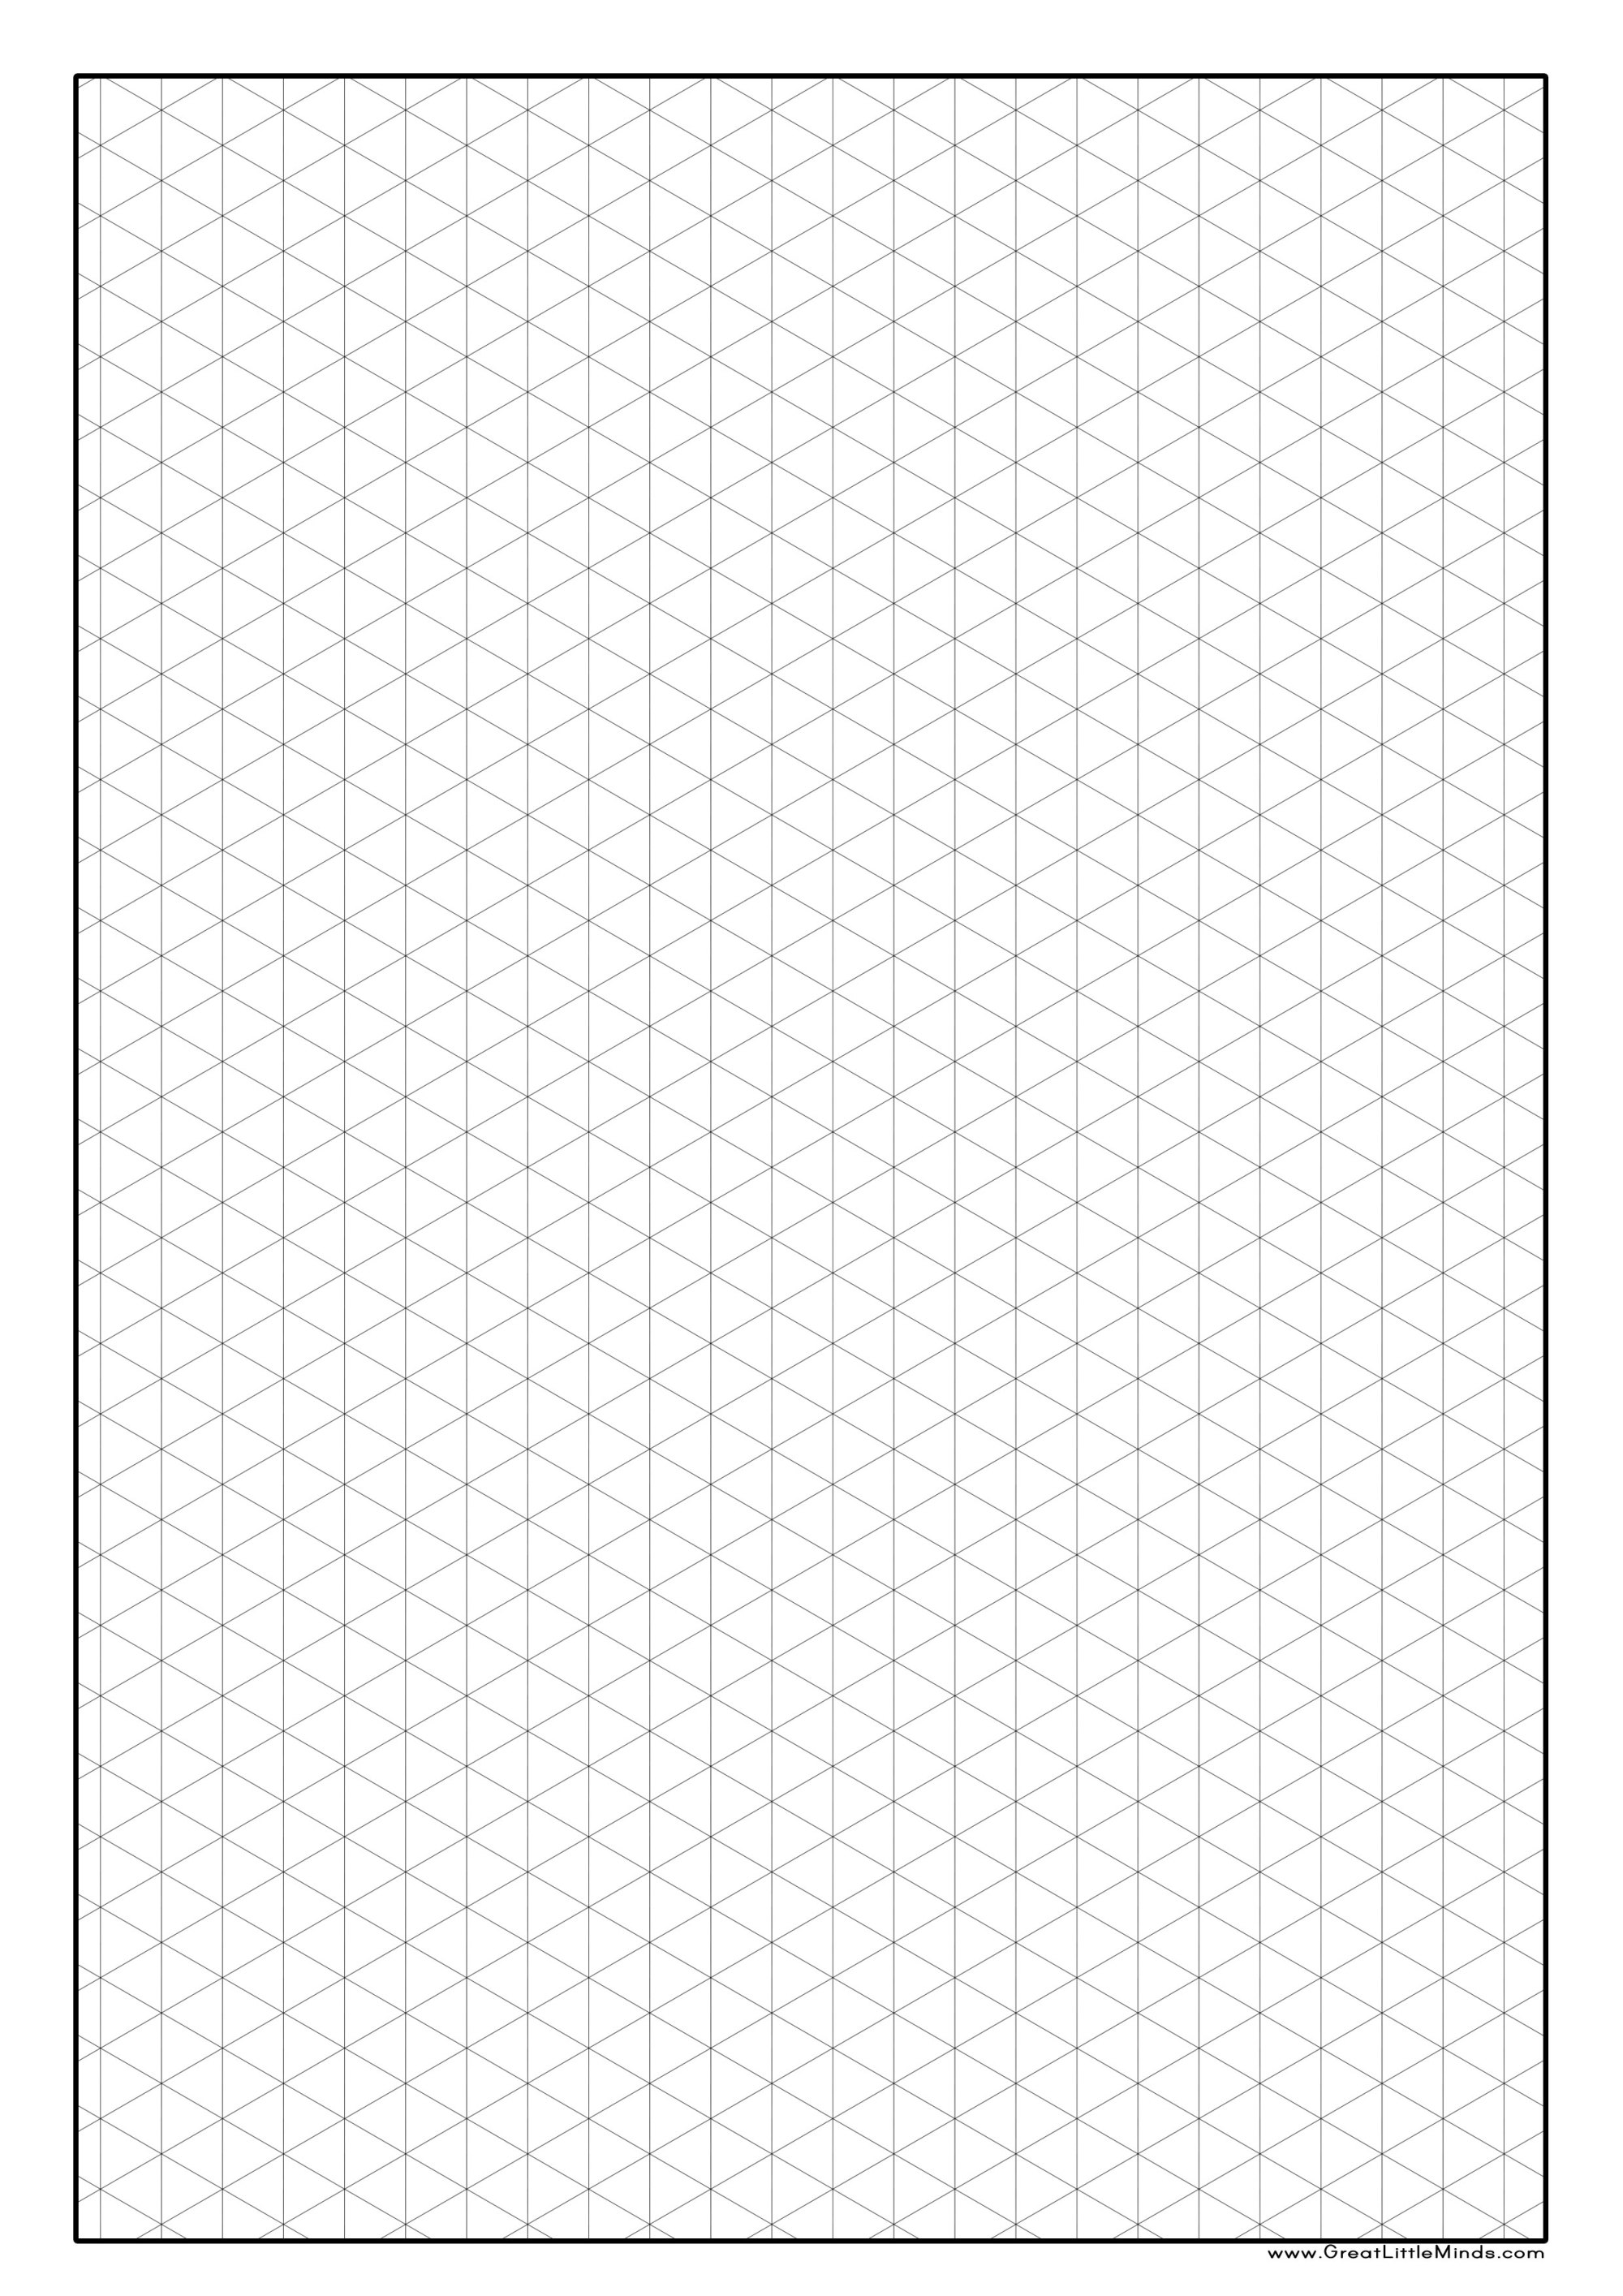 hight resolution of grid drawings templates for 2021